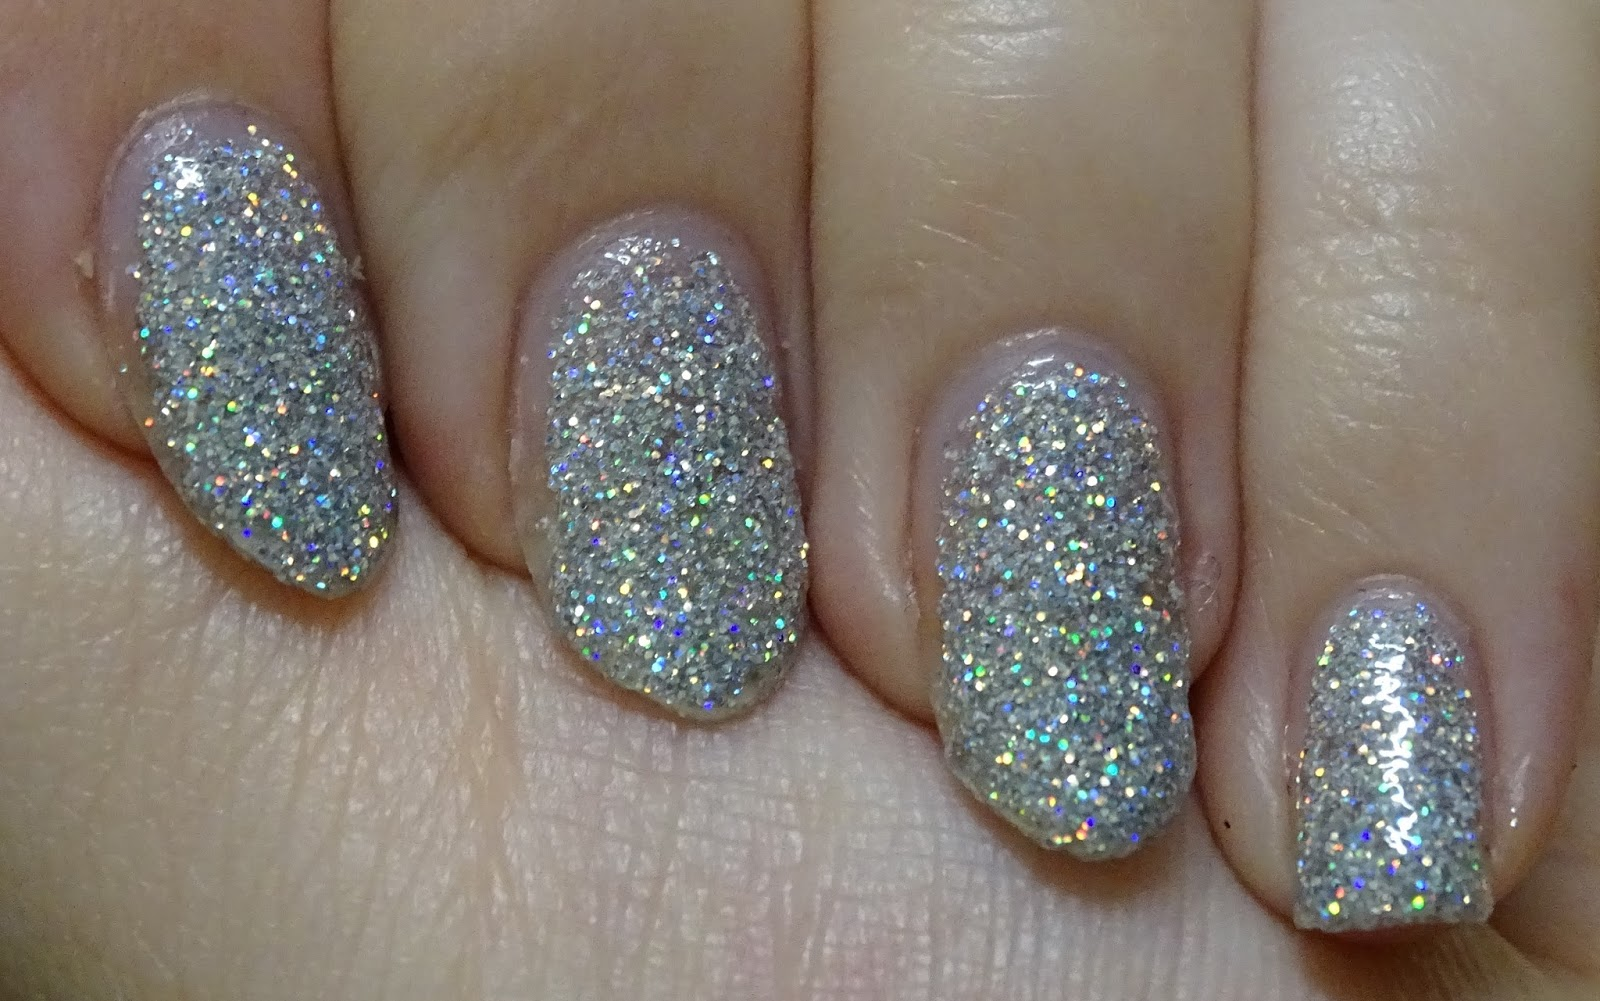 Das Mini bloggt: [Nagellack] p2 Hypnotic Lights 020 looking glass